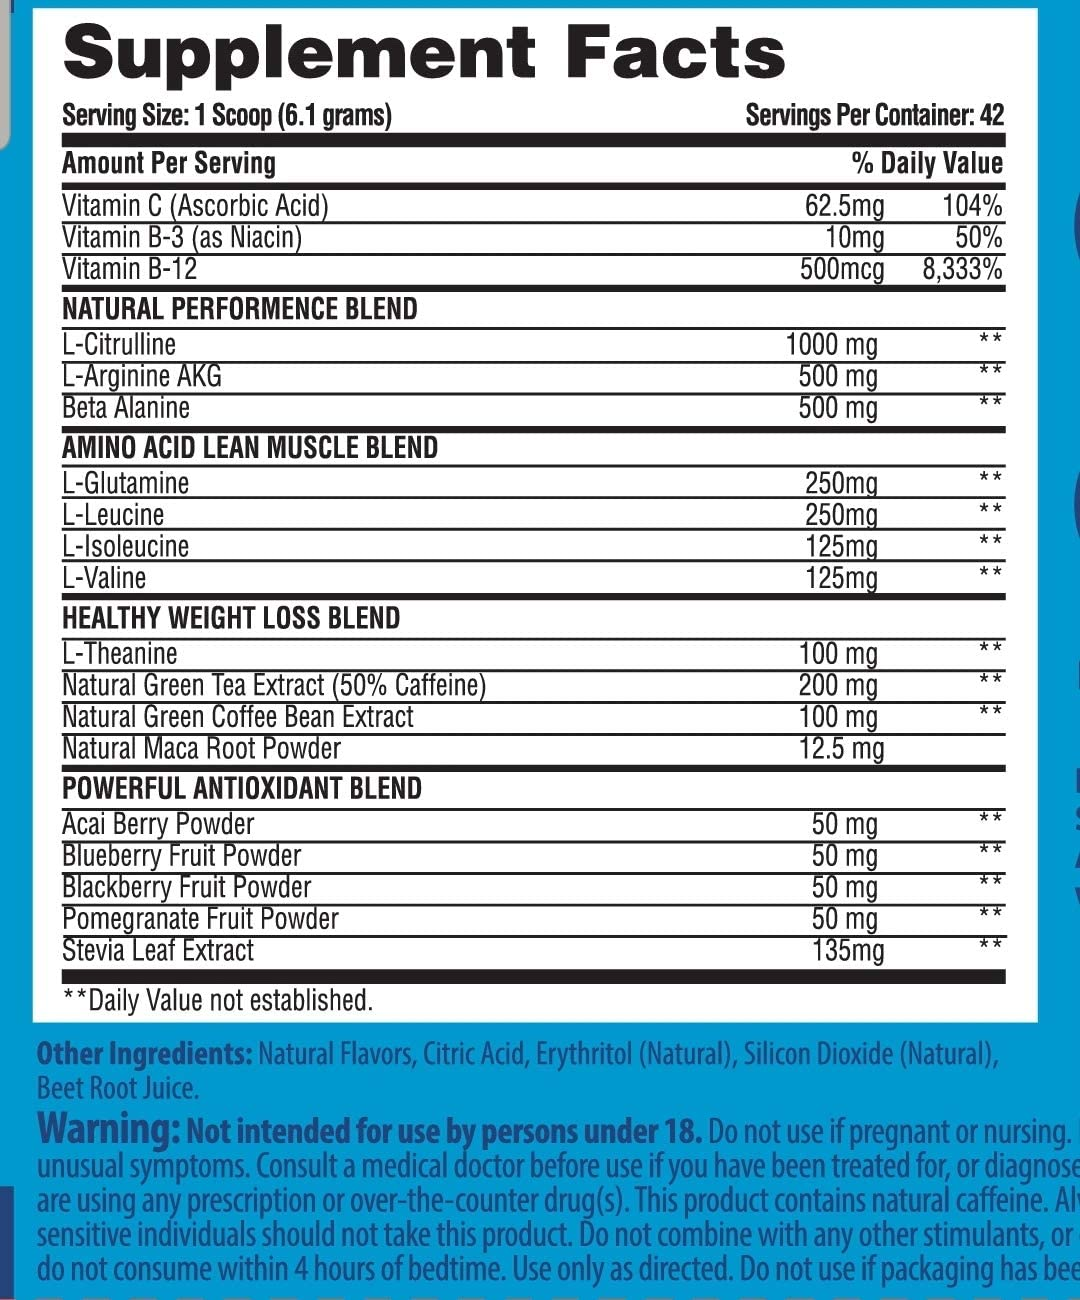 Clean Lean Natural Performance Plus by FitFarm USA Ultra-Clean Workout Catalyst Healthy Weight Loss Blend, Lean Muscle BCAA s Immune Boosting Antioxidants Non-GMO GF 42 SVG Blue-BlackBerry Acai